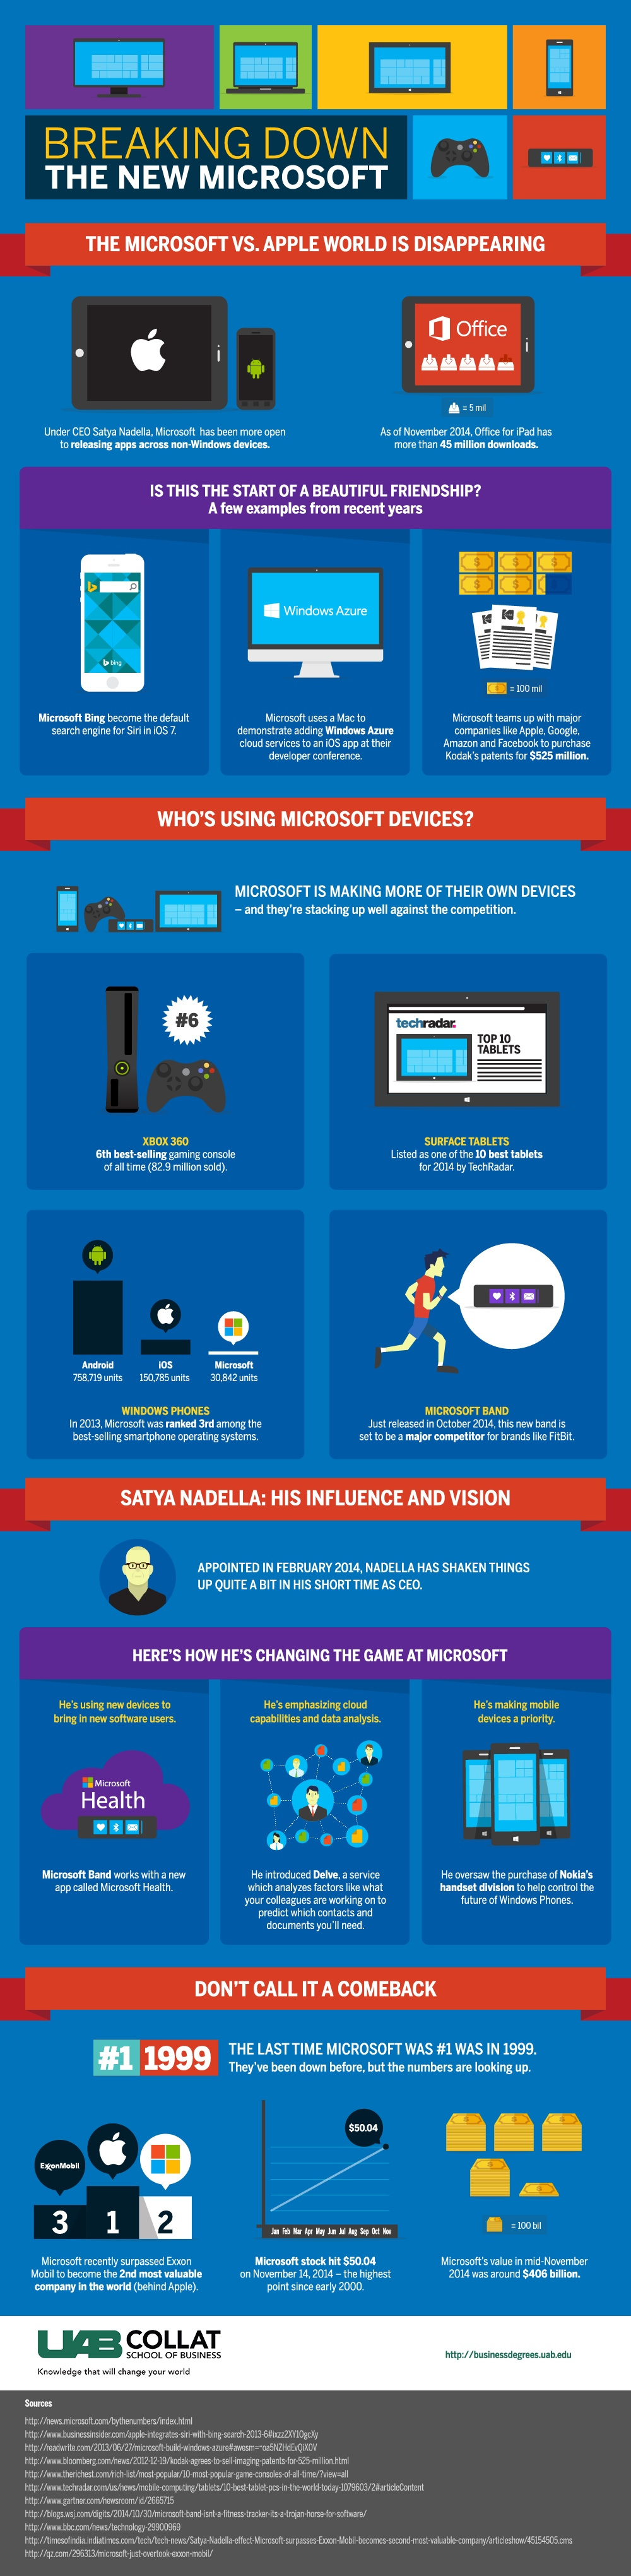 The Break Down of the New Microsoft [ Infographic ] - Image 1